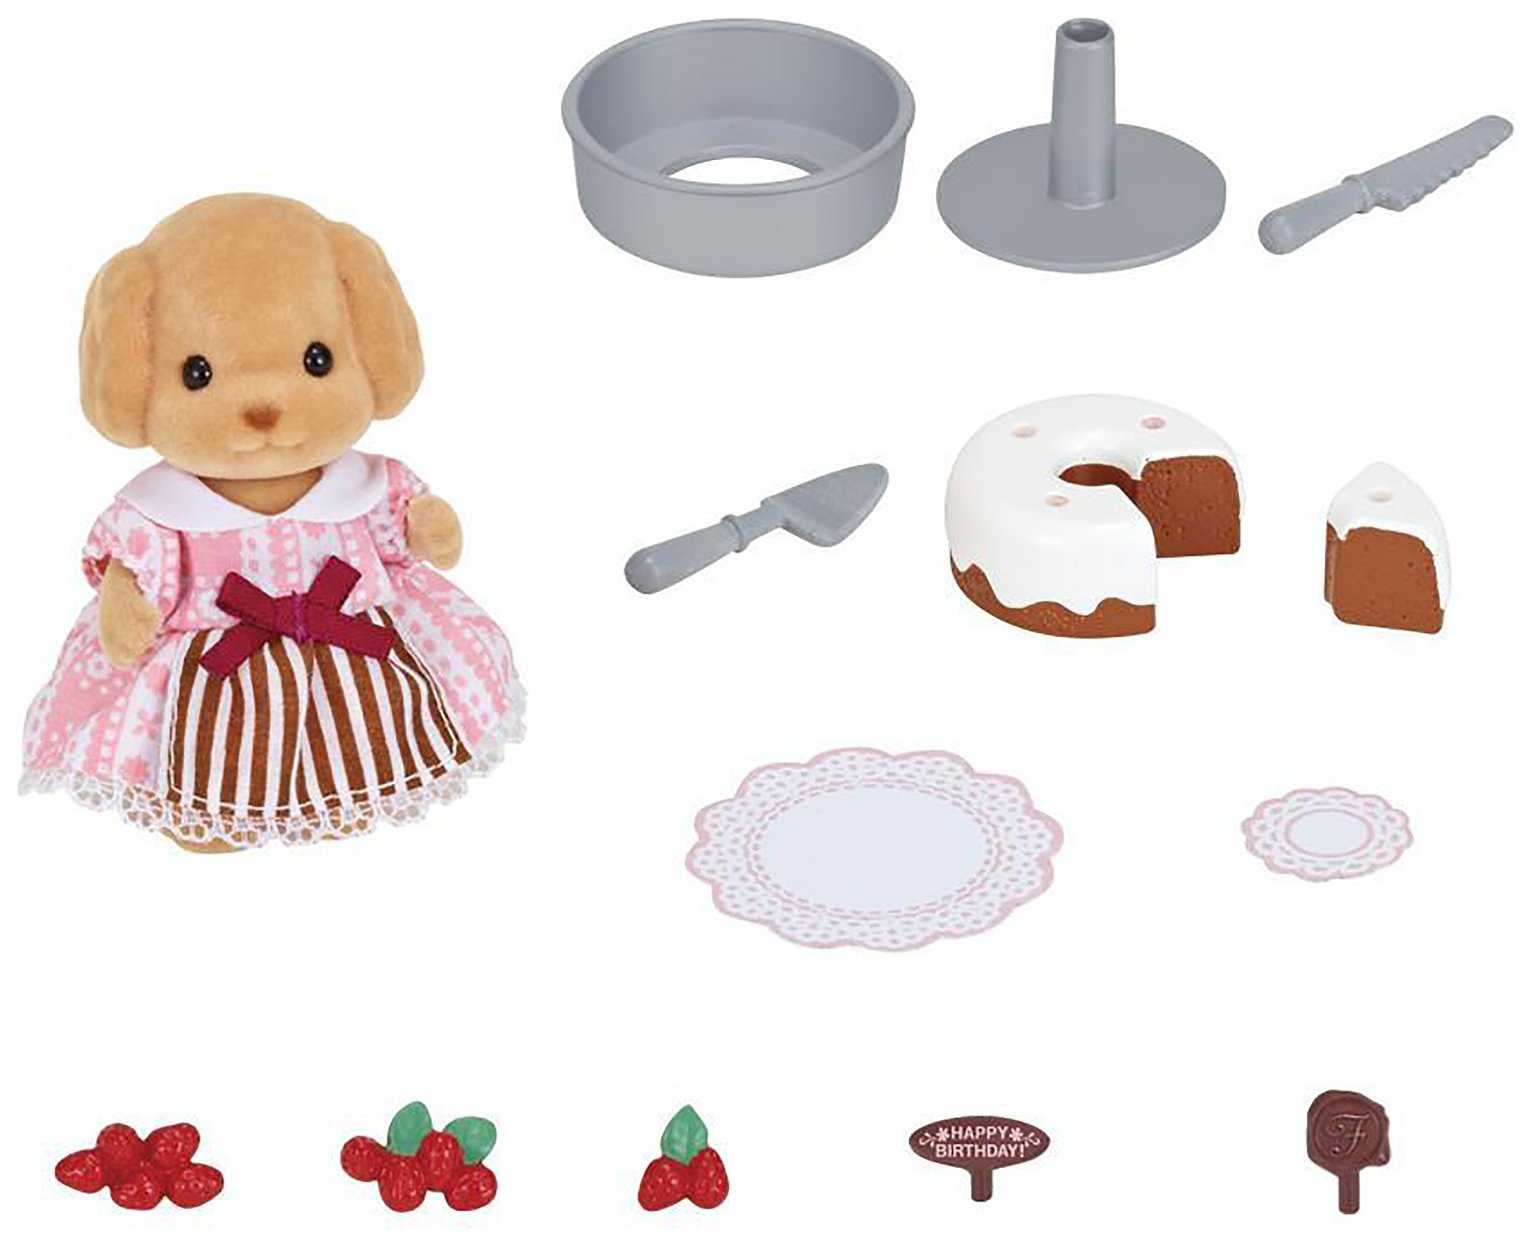 Sylvanian Families Cake Decorating Set.